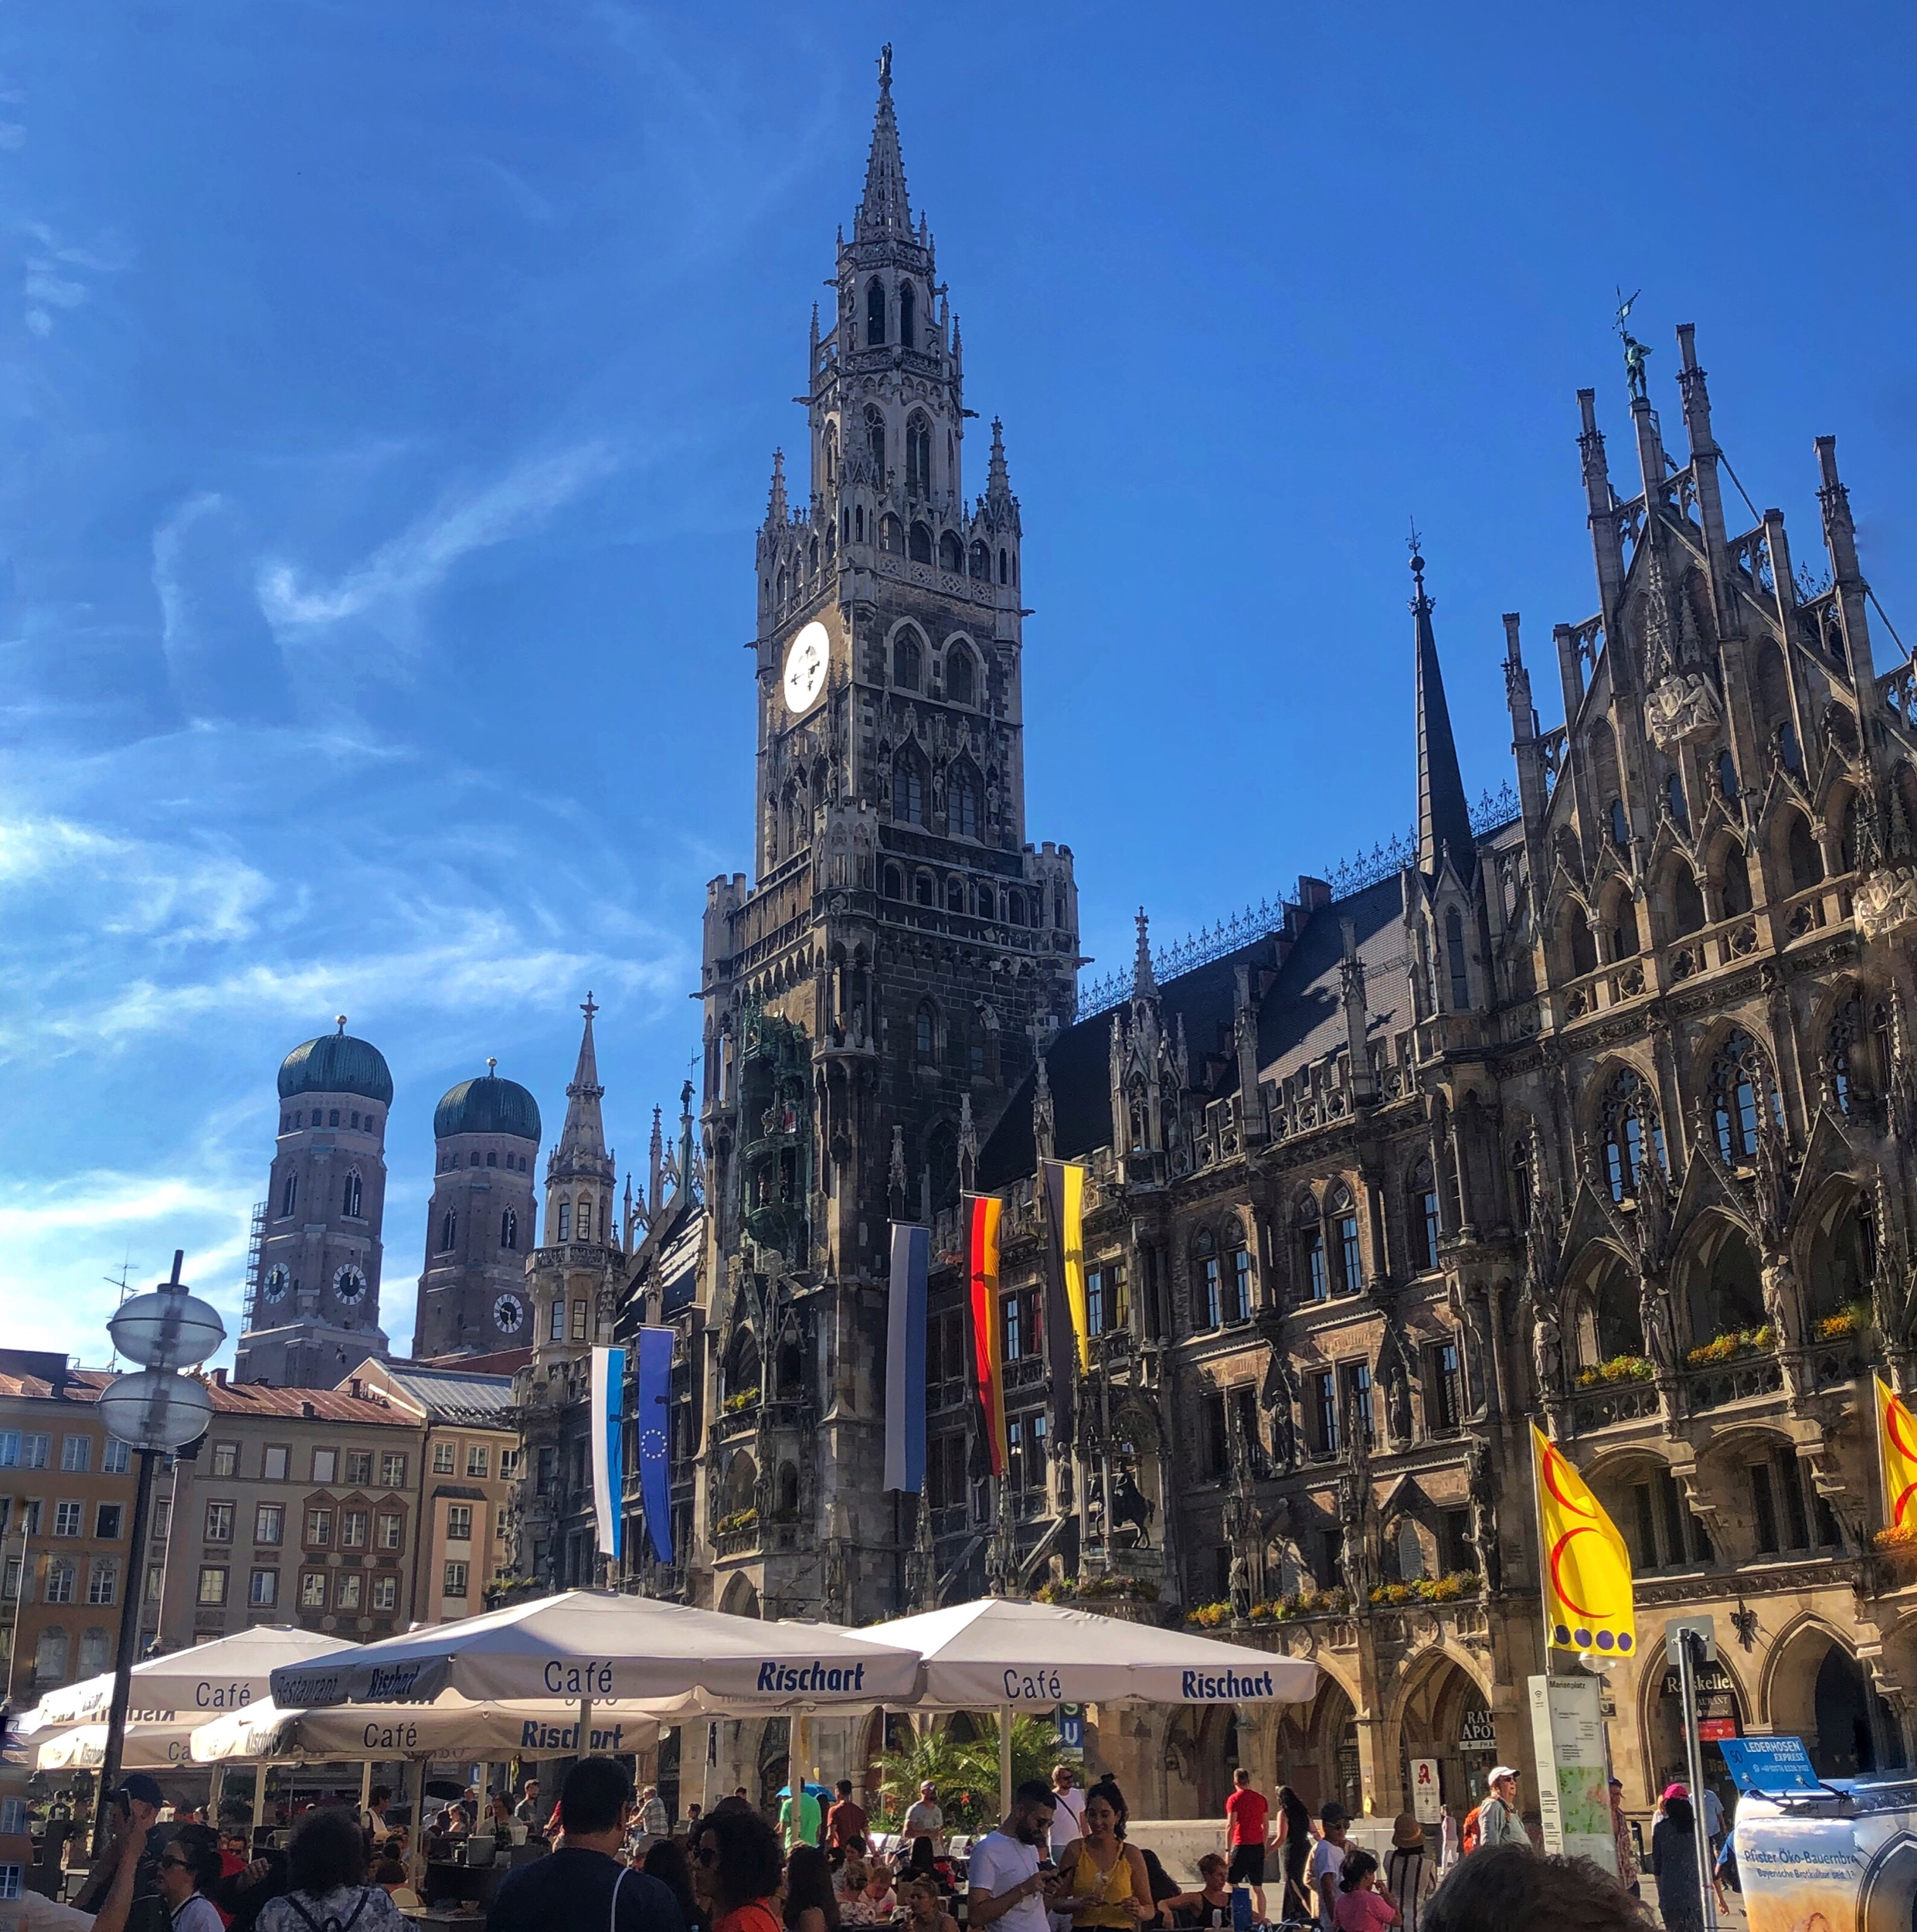 The centerpiece of Munich's old town….of course there is a beer garden!